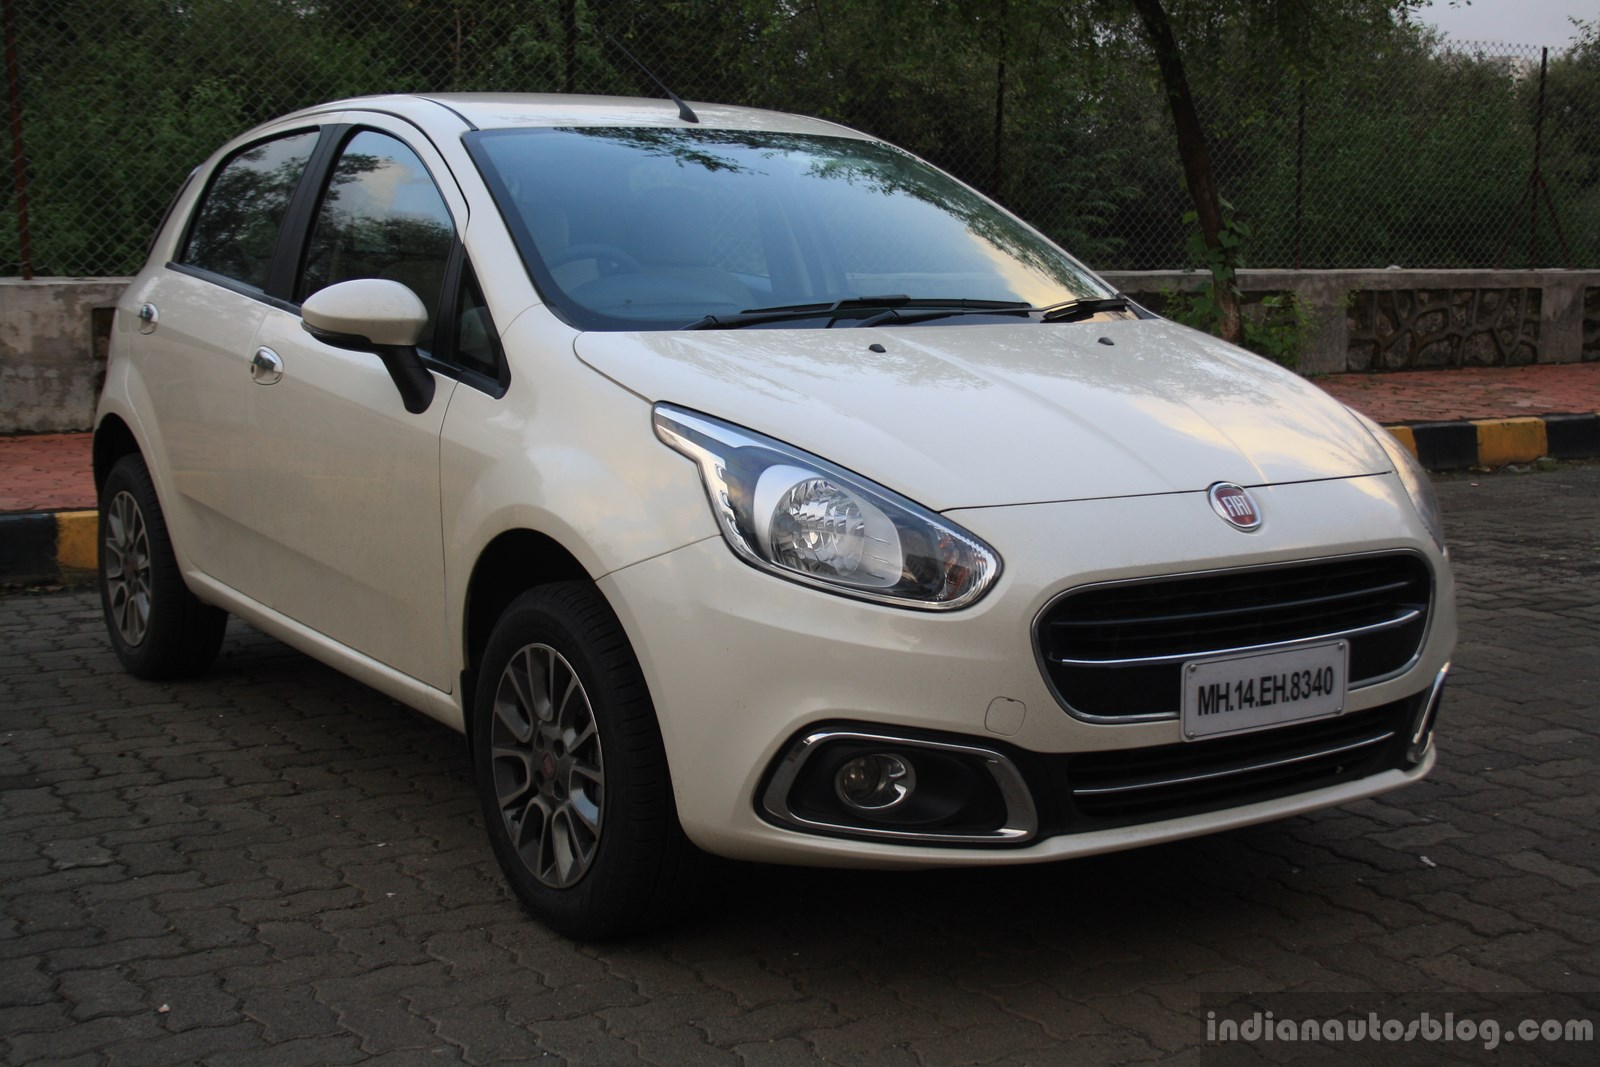 Fiat Punto Evo 1.4-litre Fire petrol review front three quarter